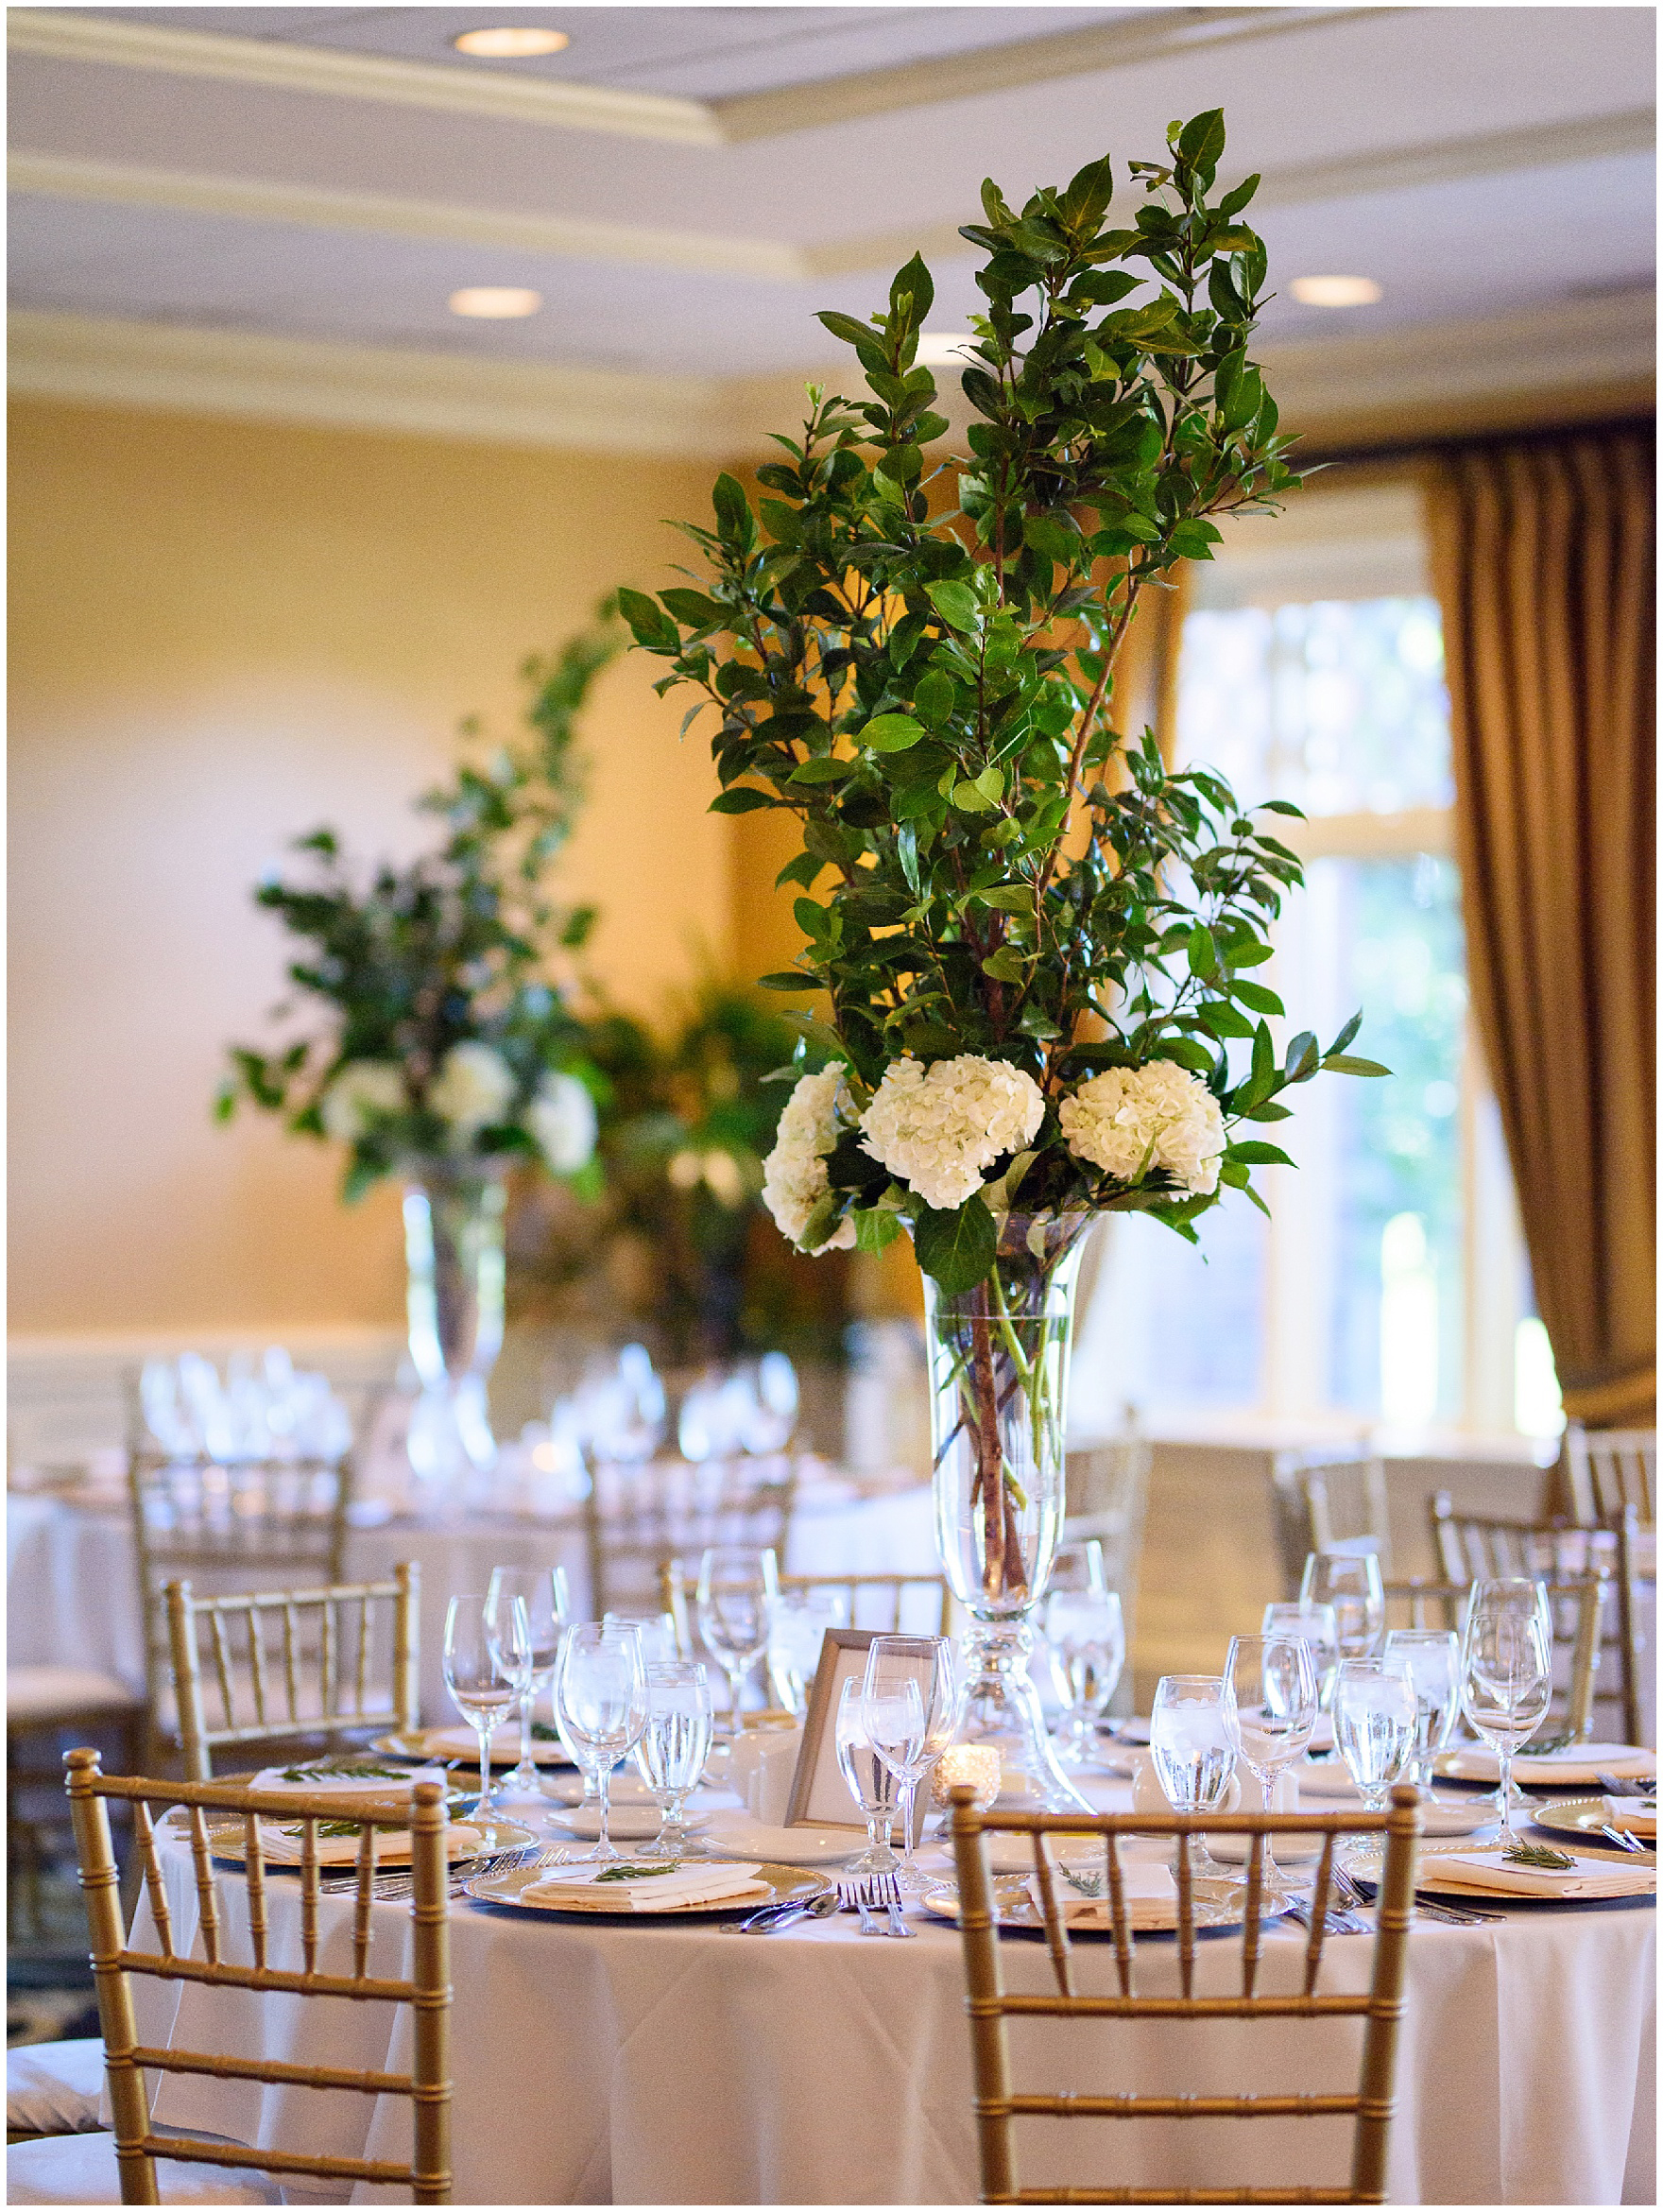 The ballroom is set for dinner with florals by Flowers for Dreams during a Butterfield Country Club wedding.